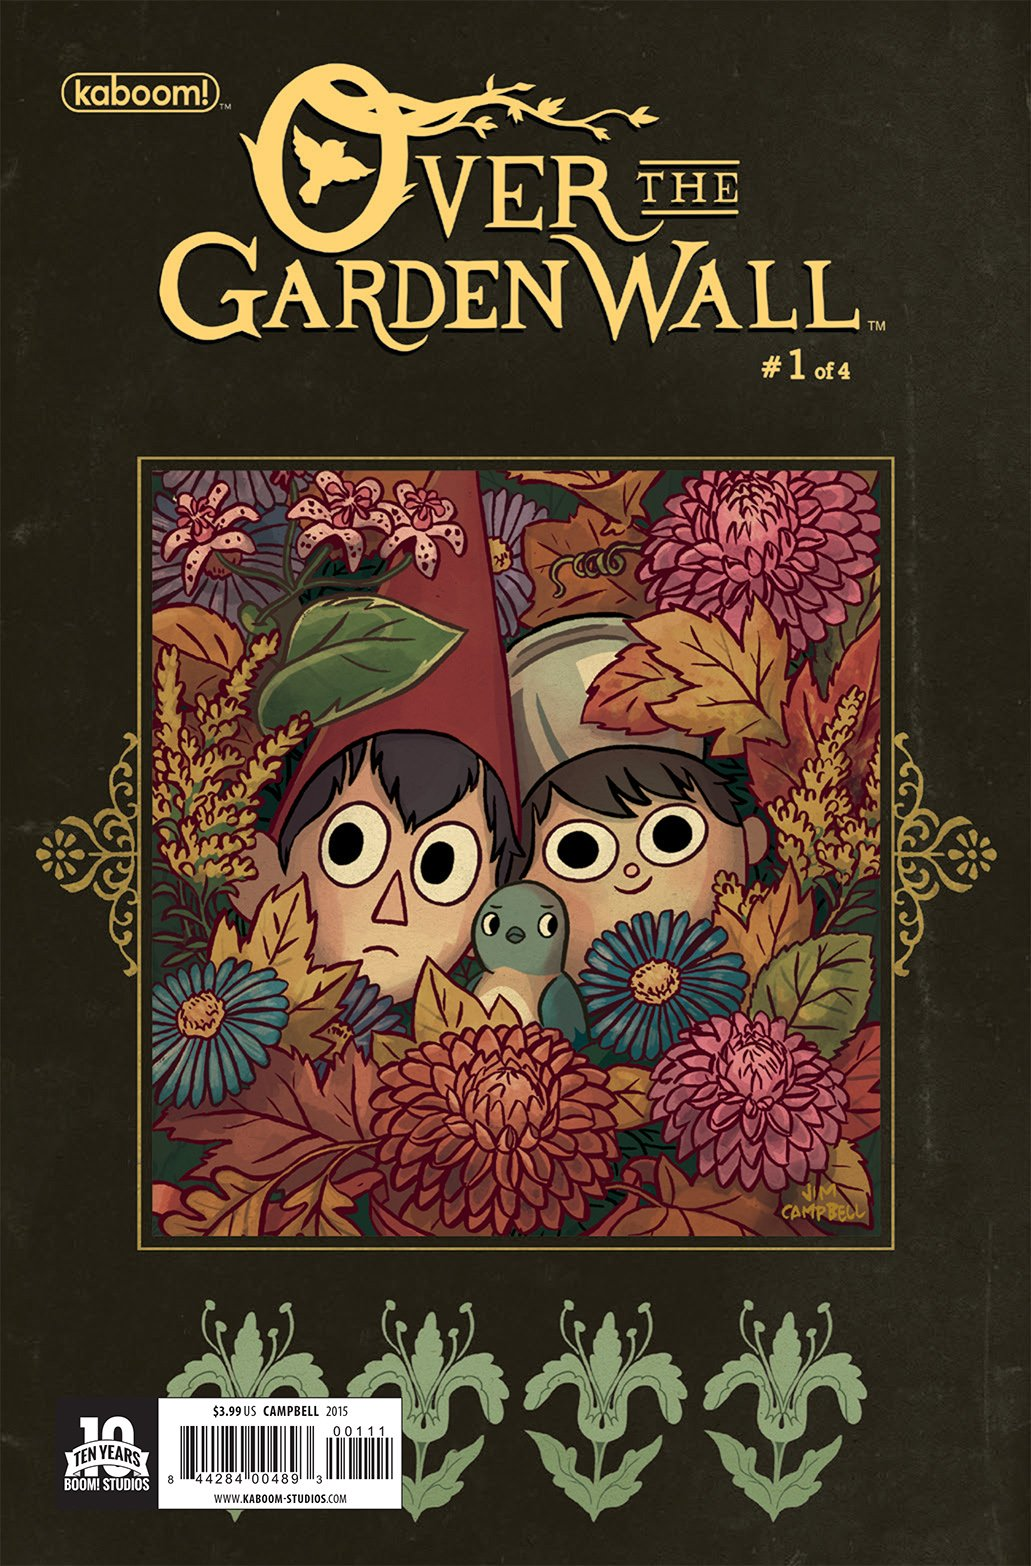 overthegardenwall_comic book cover - Over The Garden Wall Merchandise